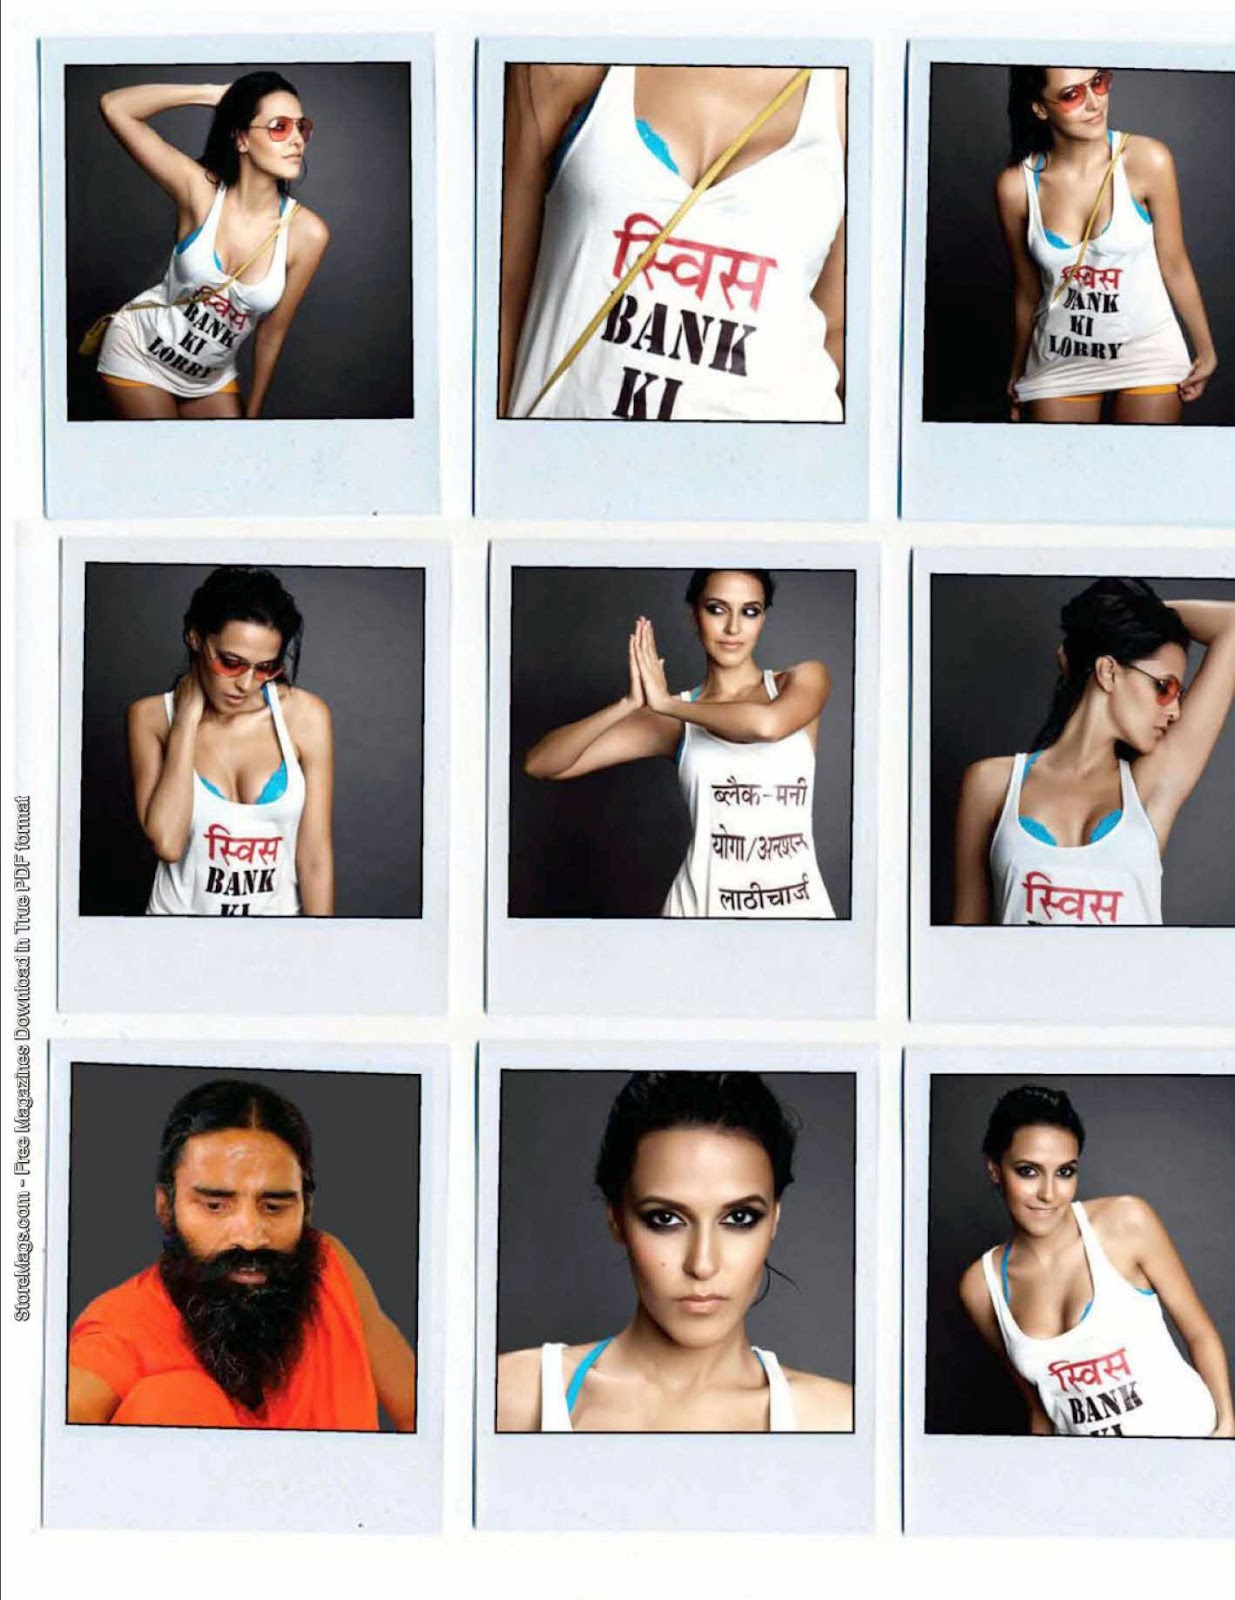 Neha Dhupia FHM India July 2011 Magazine photos collage